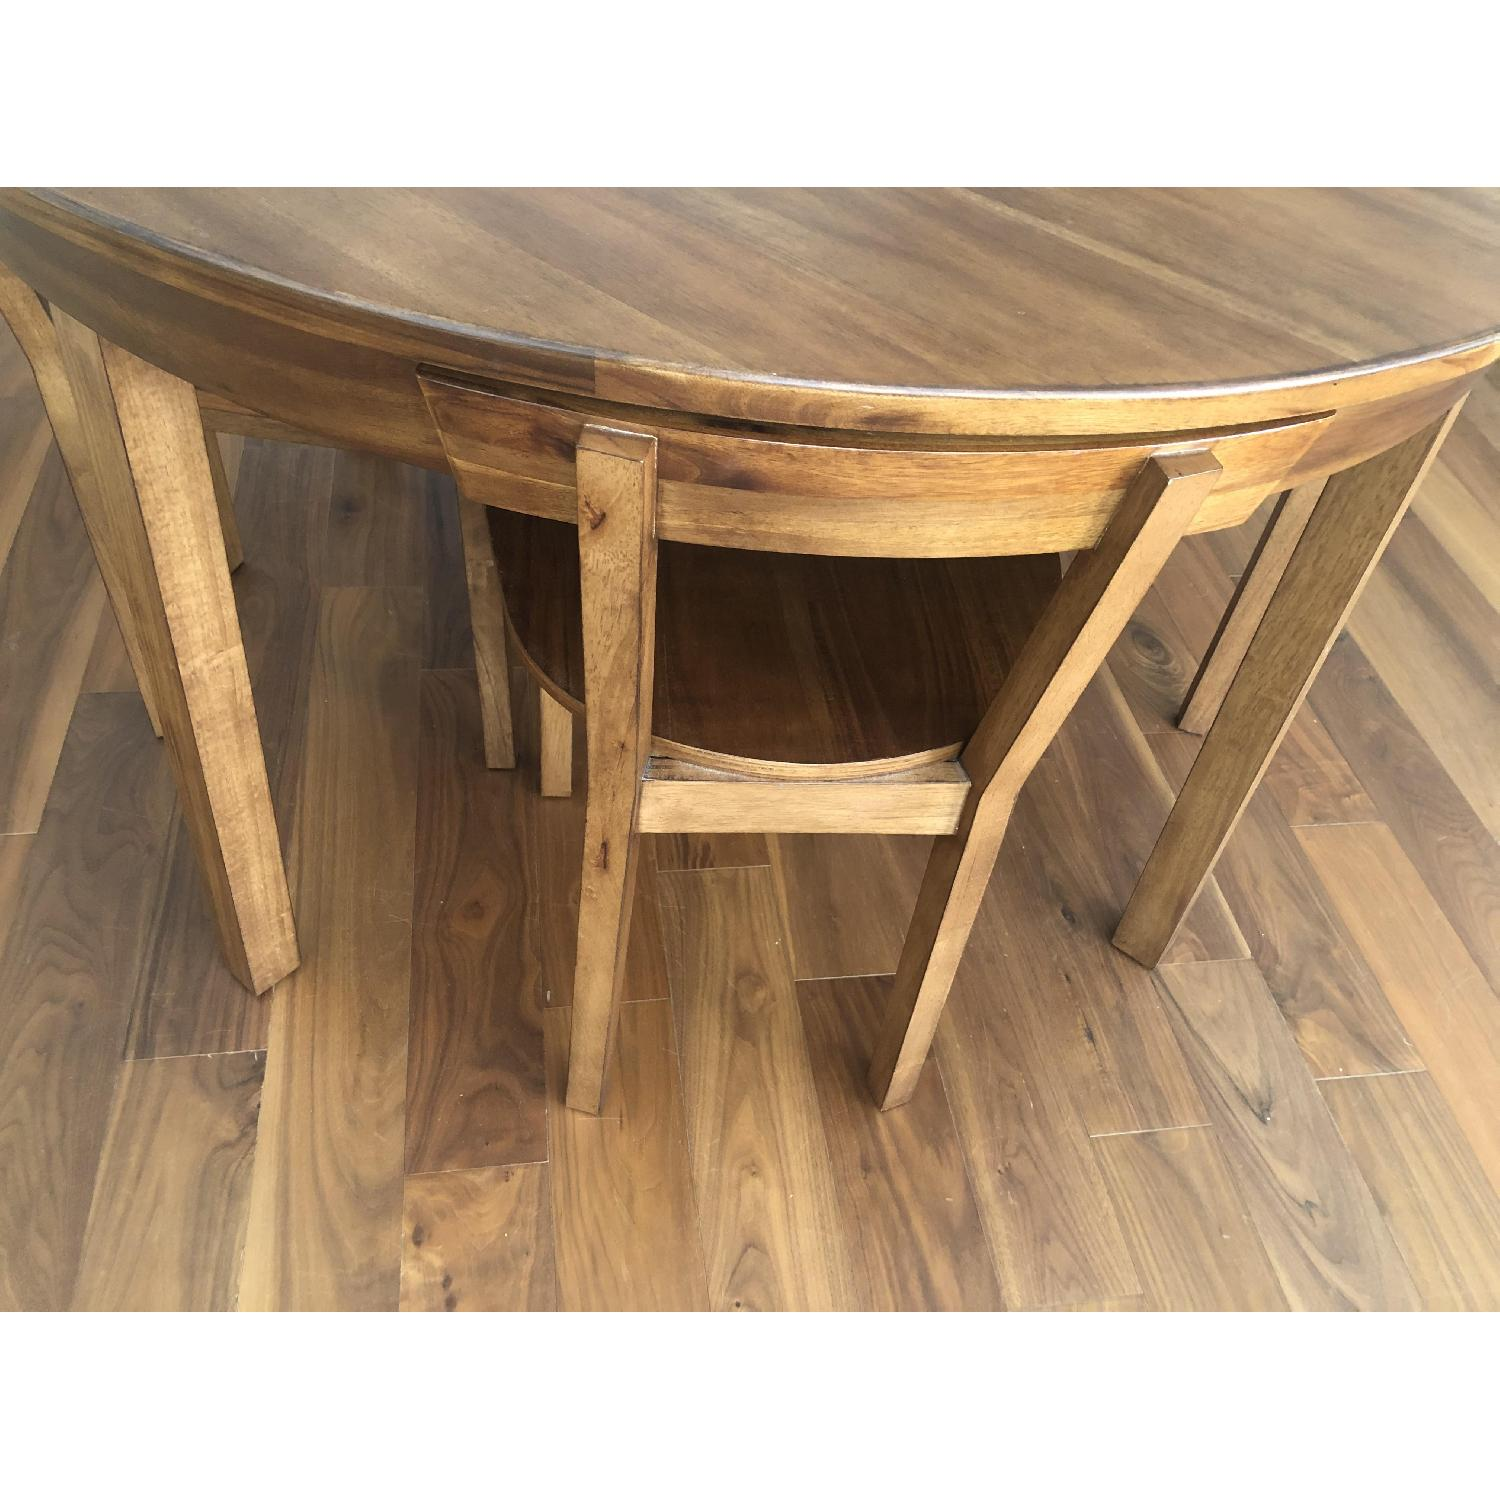 CB2 Claremont Round Wood Dining Table-2